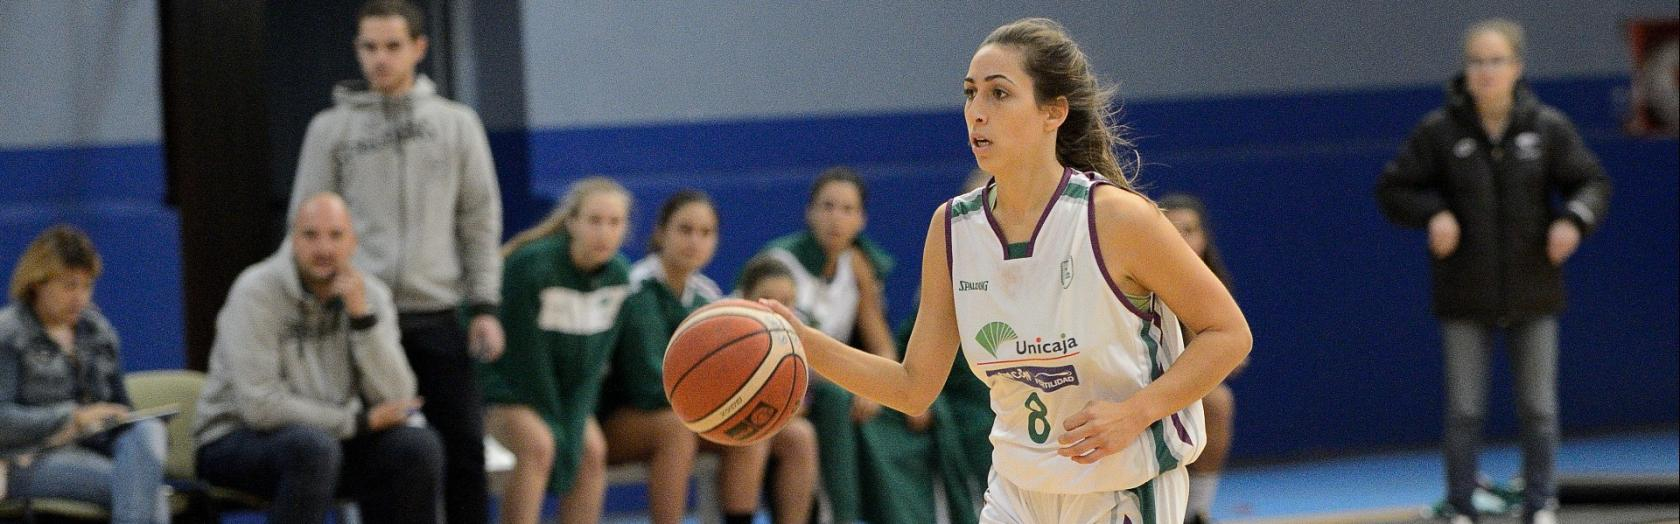 Unicaja Female continues leaders and unbeaten